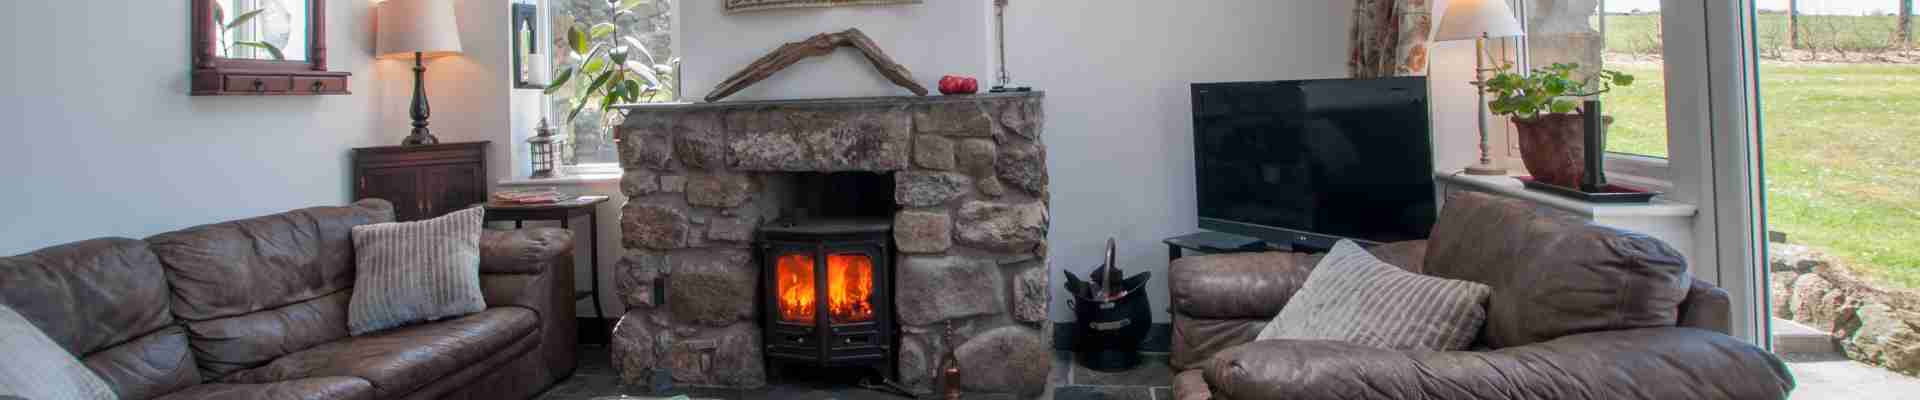 Holiday cottages with real fires, open fires, log fires, stoves, inglenooks